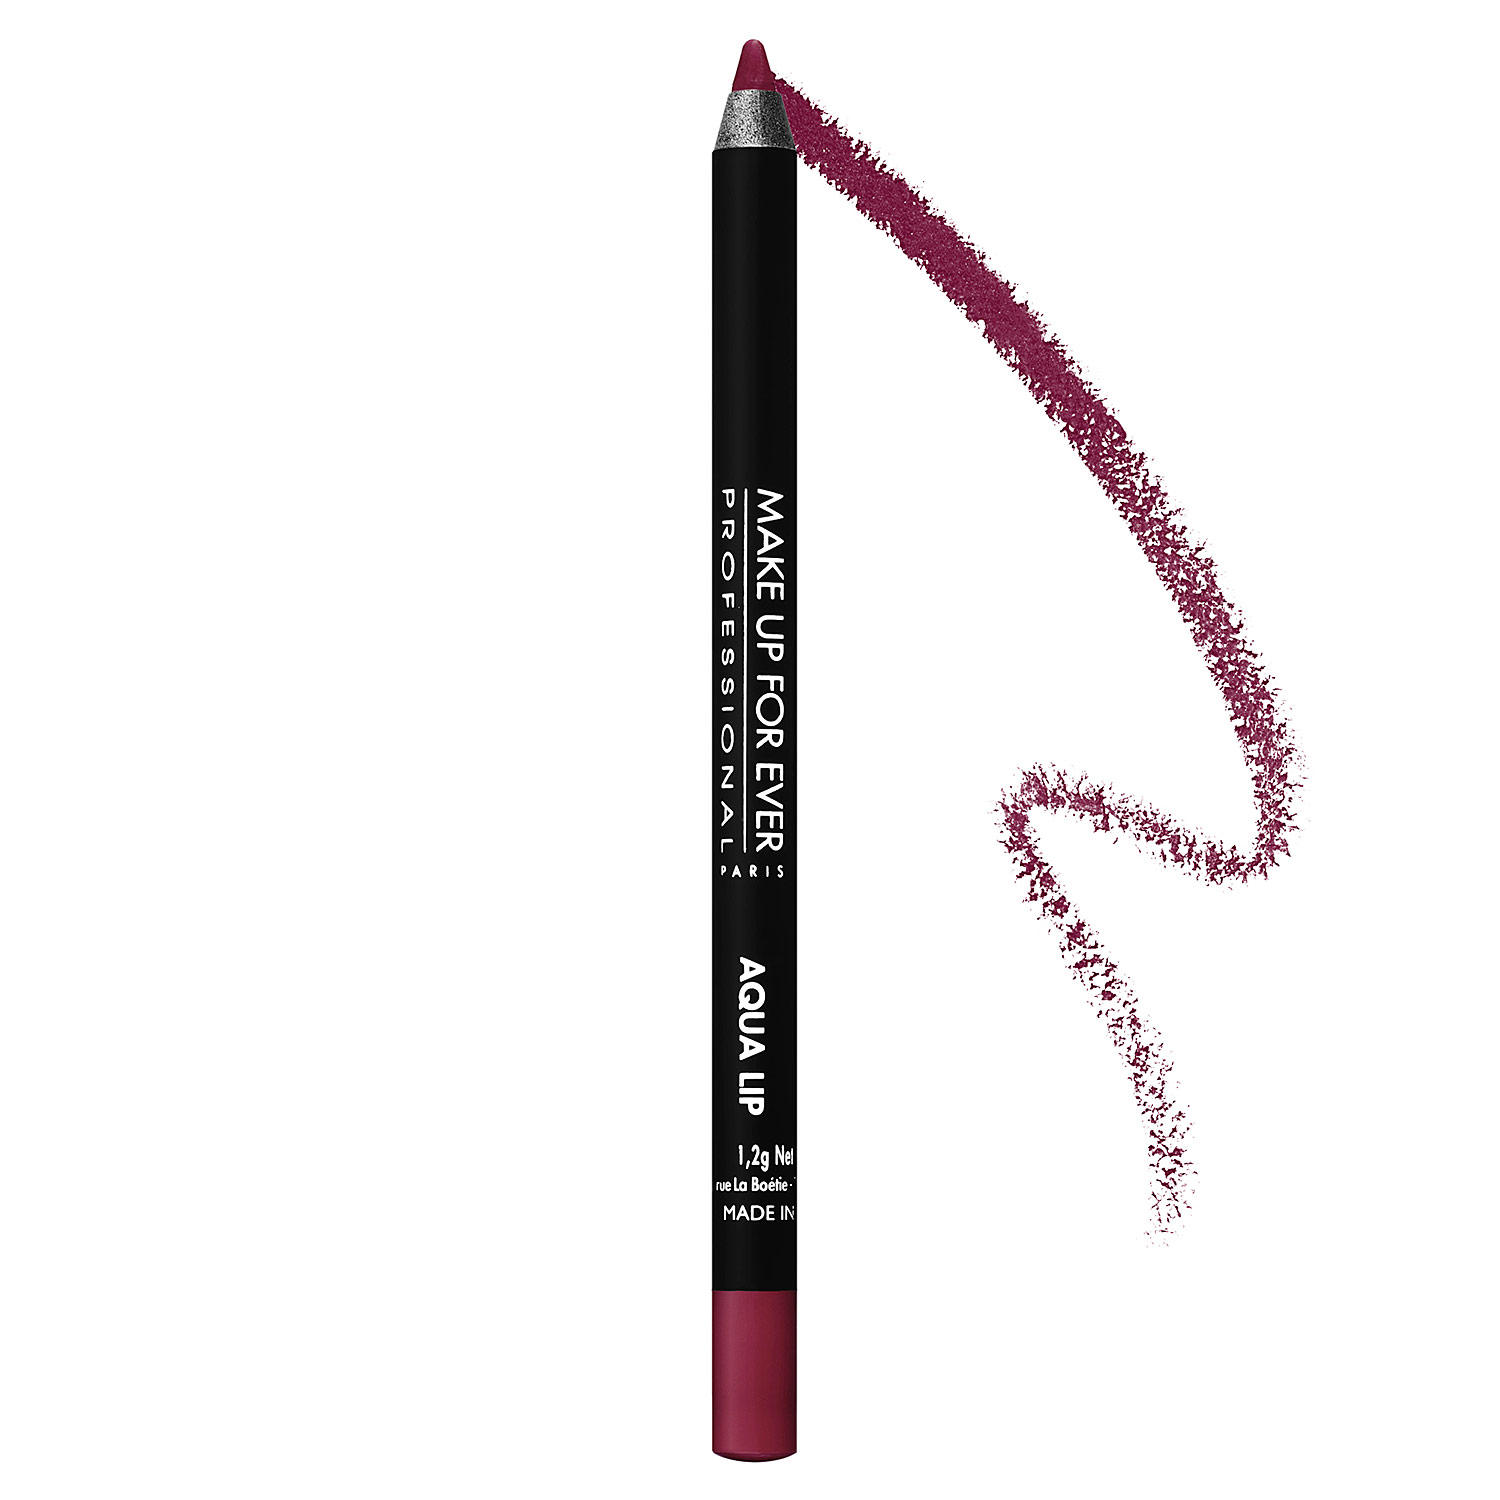 Makeup Forever Aqua Lip Waterproof Lipliner Pencil Matte Raspberry 10C